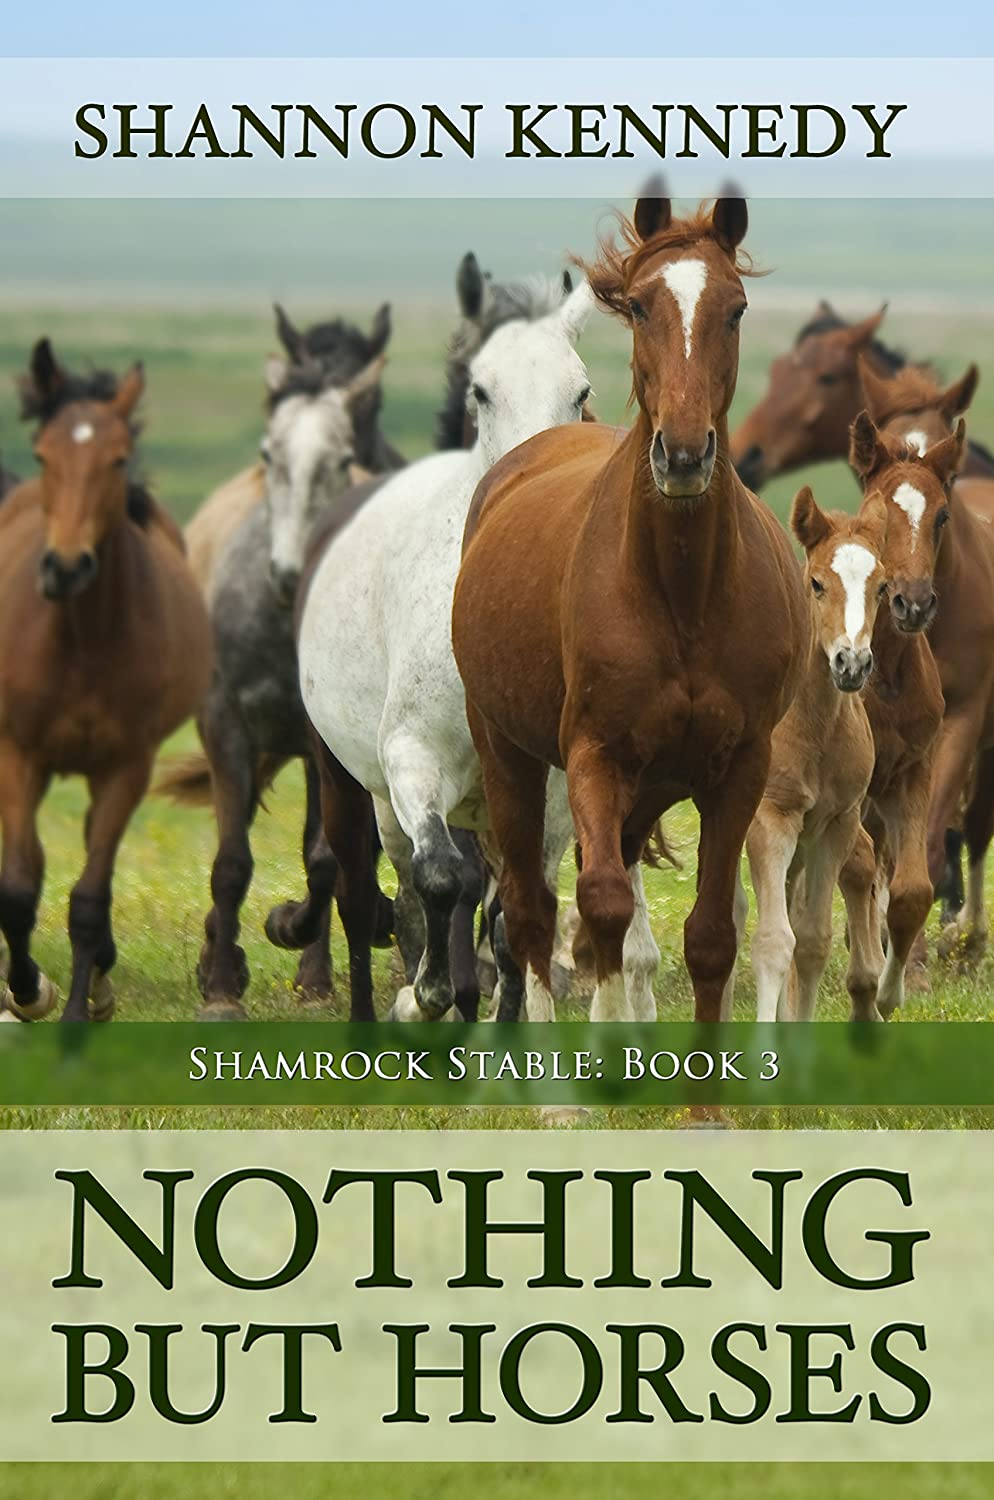 Horse Books   Horse DVDs   Quality horse books and dvds ...